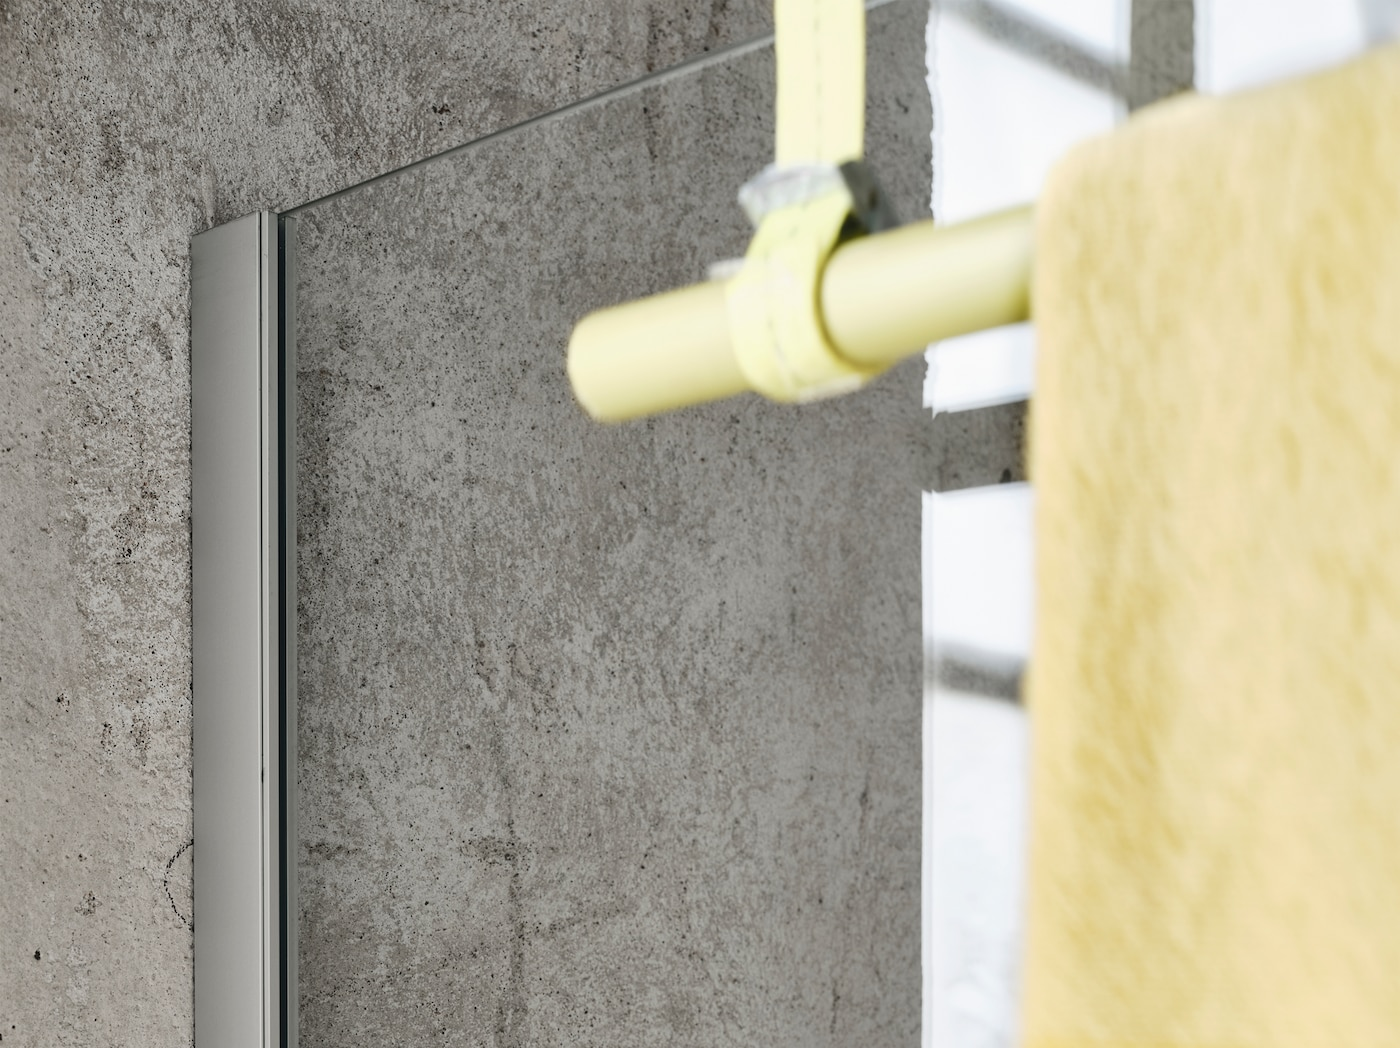 A close-up of OPPEJEN shower screen attached to a grey concrete wall with a yellow rail and towel hanging in the foreground.